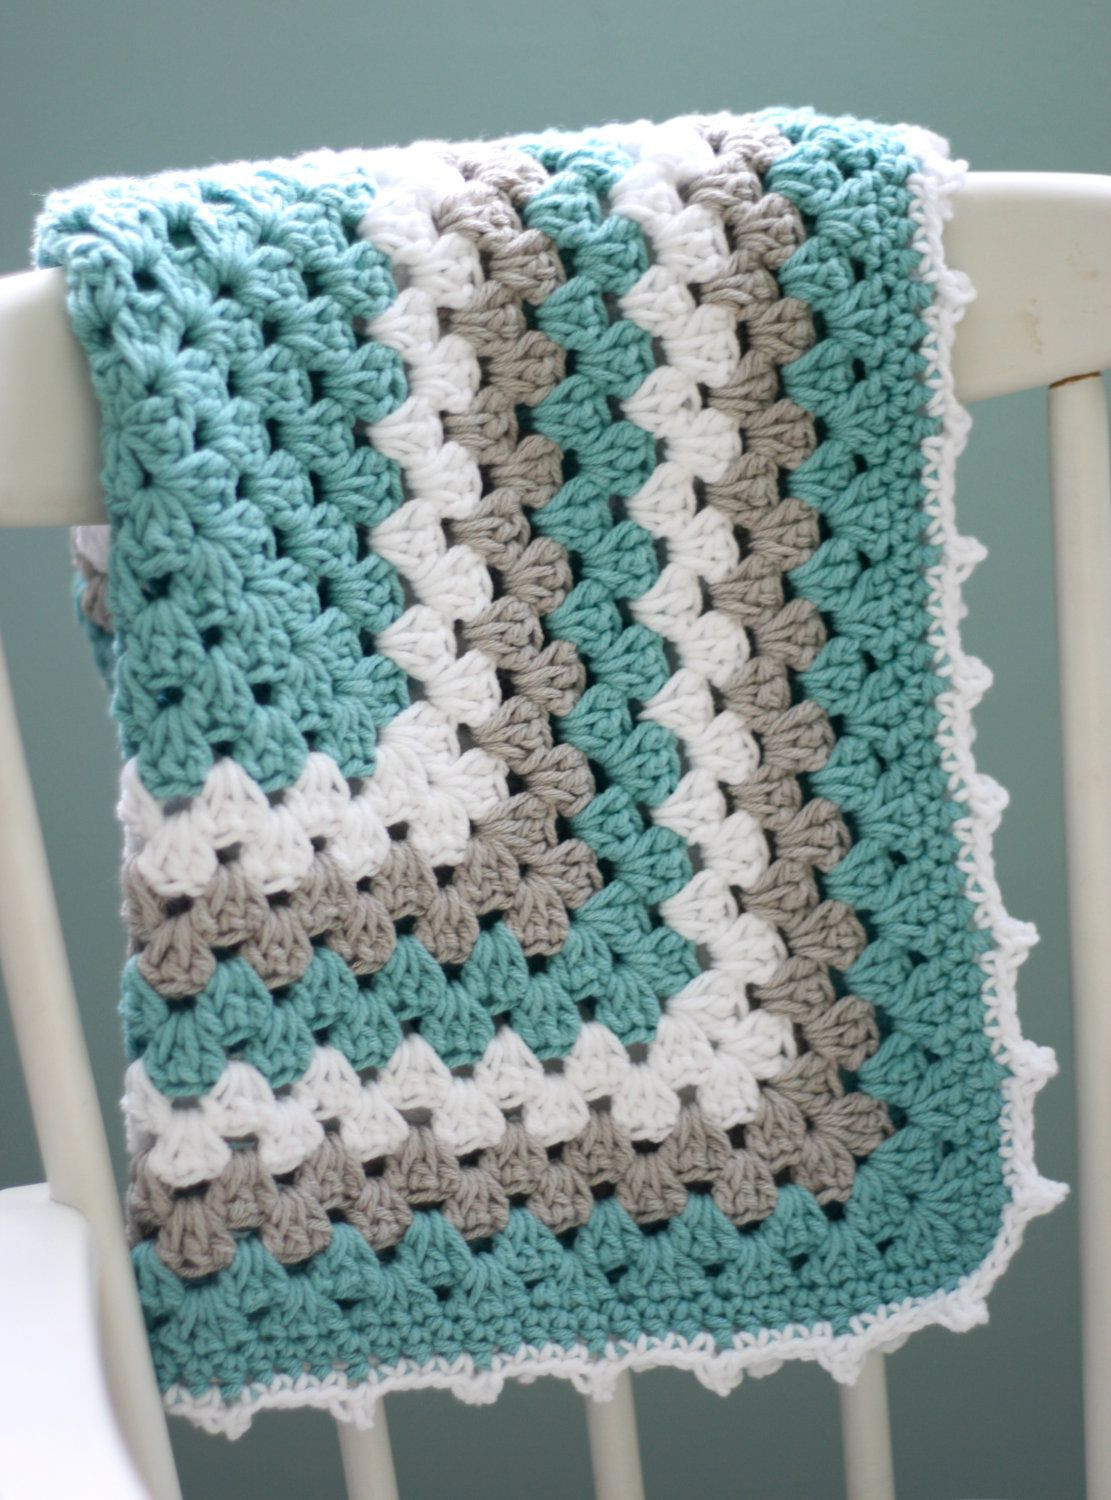 Easy Crochet Granny Squares Free Patterns Unique Daisy Cottage Designs Granny Square Blanket Crochet Of Lovely 40 Ideas Easy Crochet Granny Squares Free Patterns